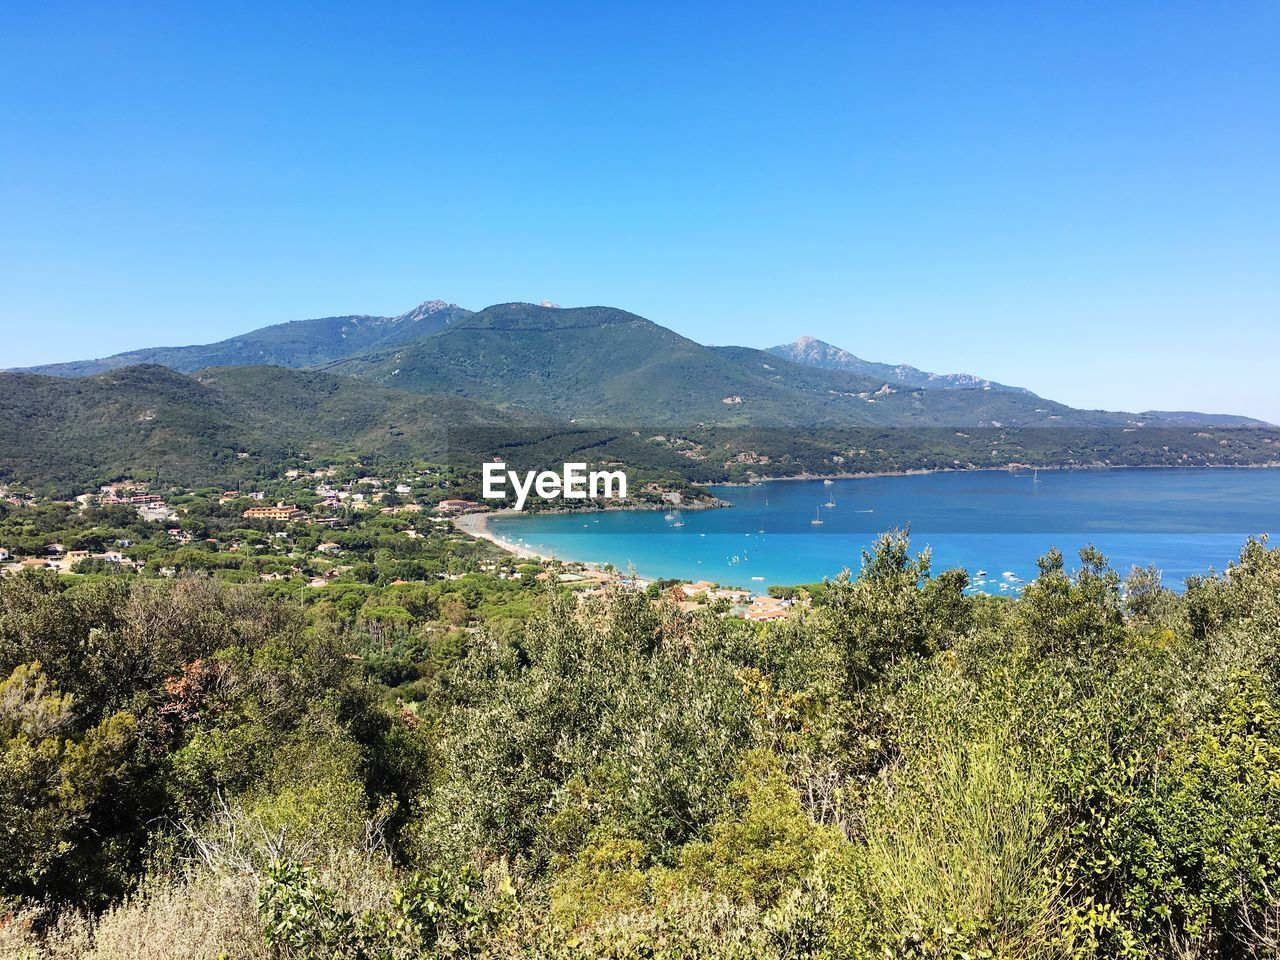 mountain, nature, clear sky, tranquil scene, beauty in nature, tranquility, outdoors, scenics, blue, day, no people, mountain range, architecture, water, landscape, sea, town, tree, sky